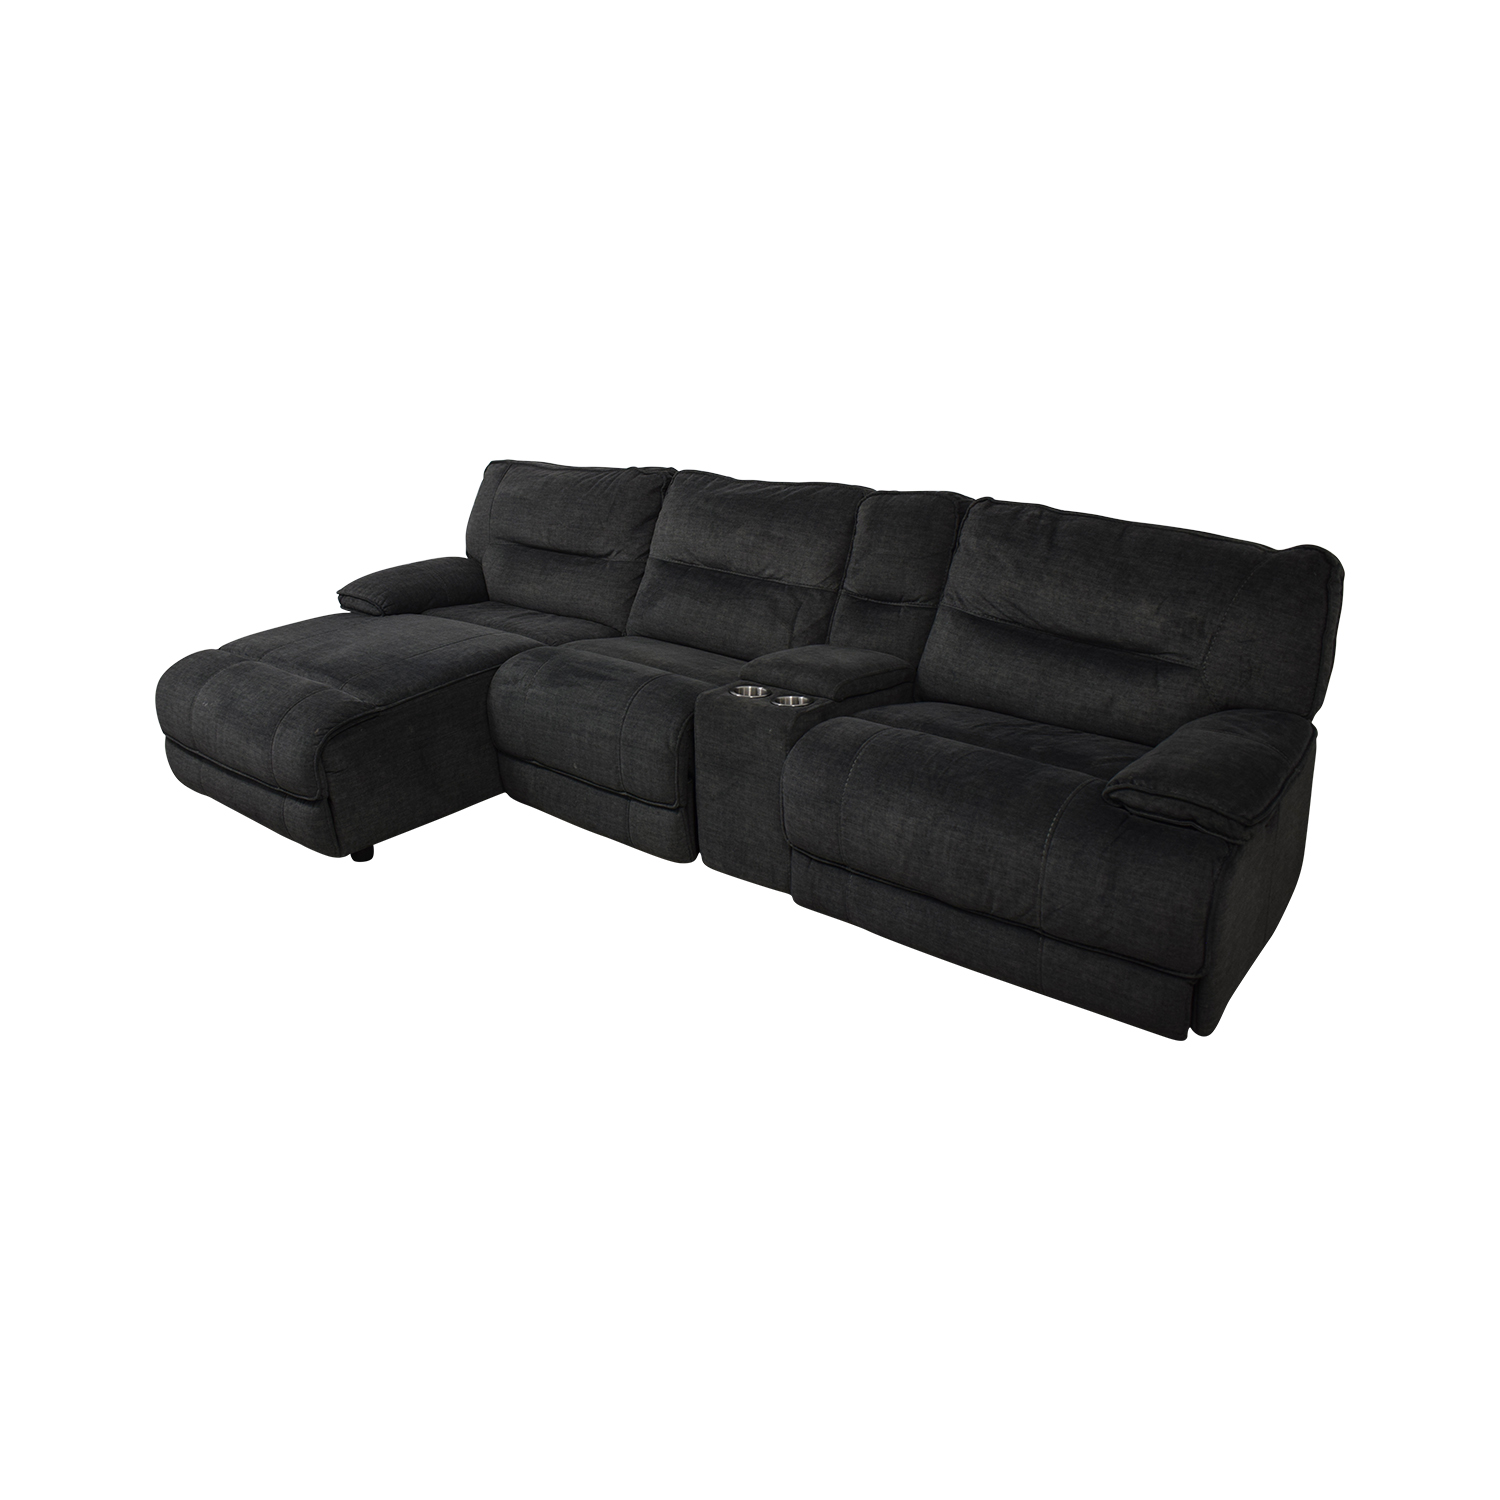 Bob's Discount Furniture Bob's Discount Furniture Reclining Sectional on sale